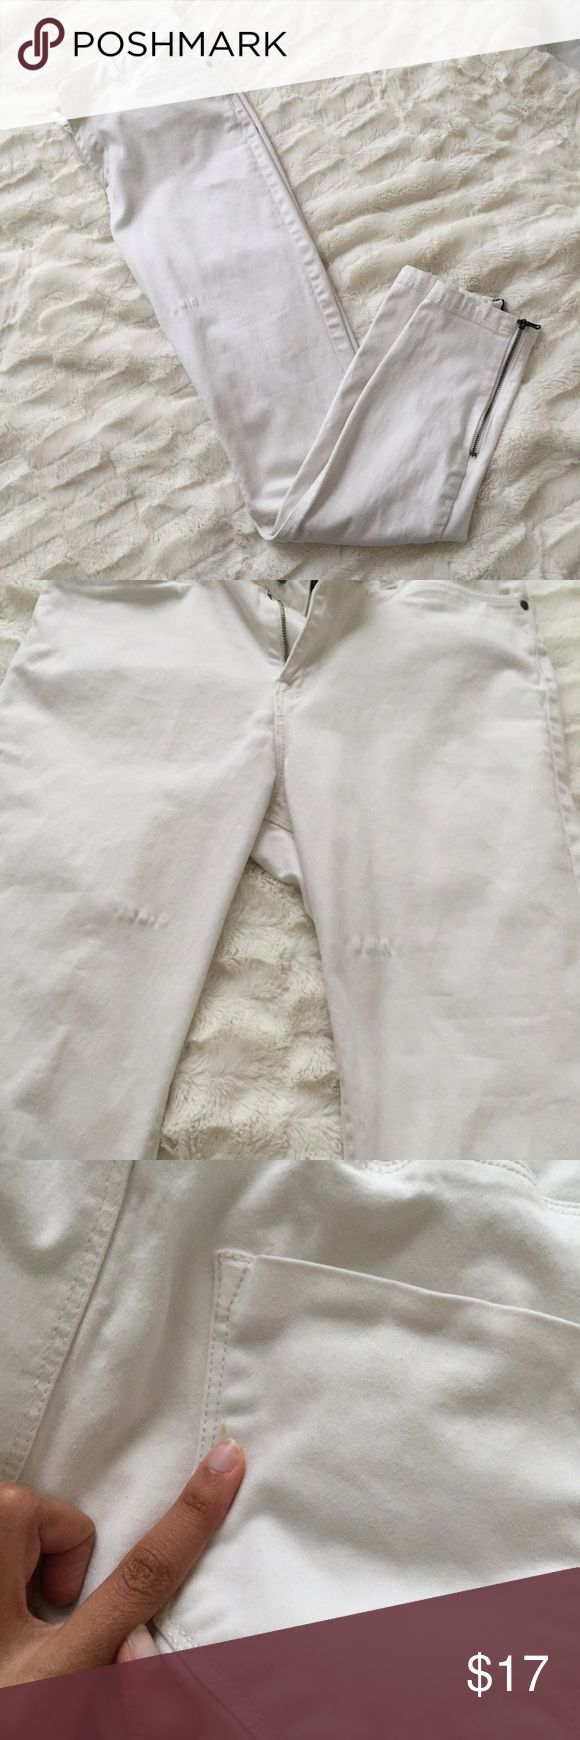 White skinny jeans Worn dozens of times. Features cute zips on the ankles. Some wear as shown as well as a small stain on the back of the jeans. Tag says 27, but will best fit a 26! DO NOT ASK TO TRADE OR YOU WILL BE BLOCKED. Forever 21 Jeans Skinny